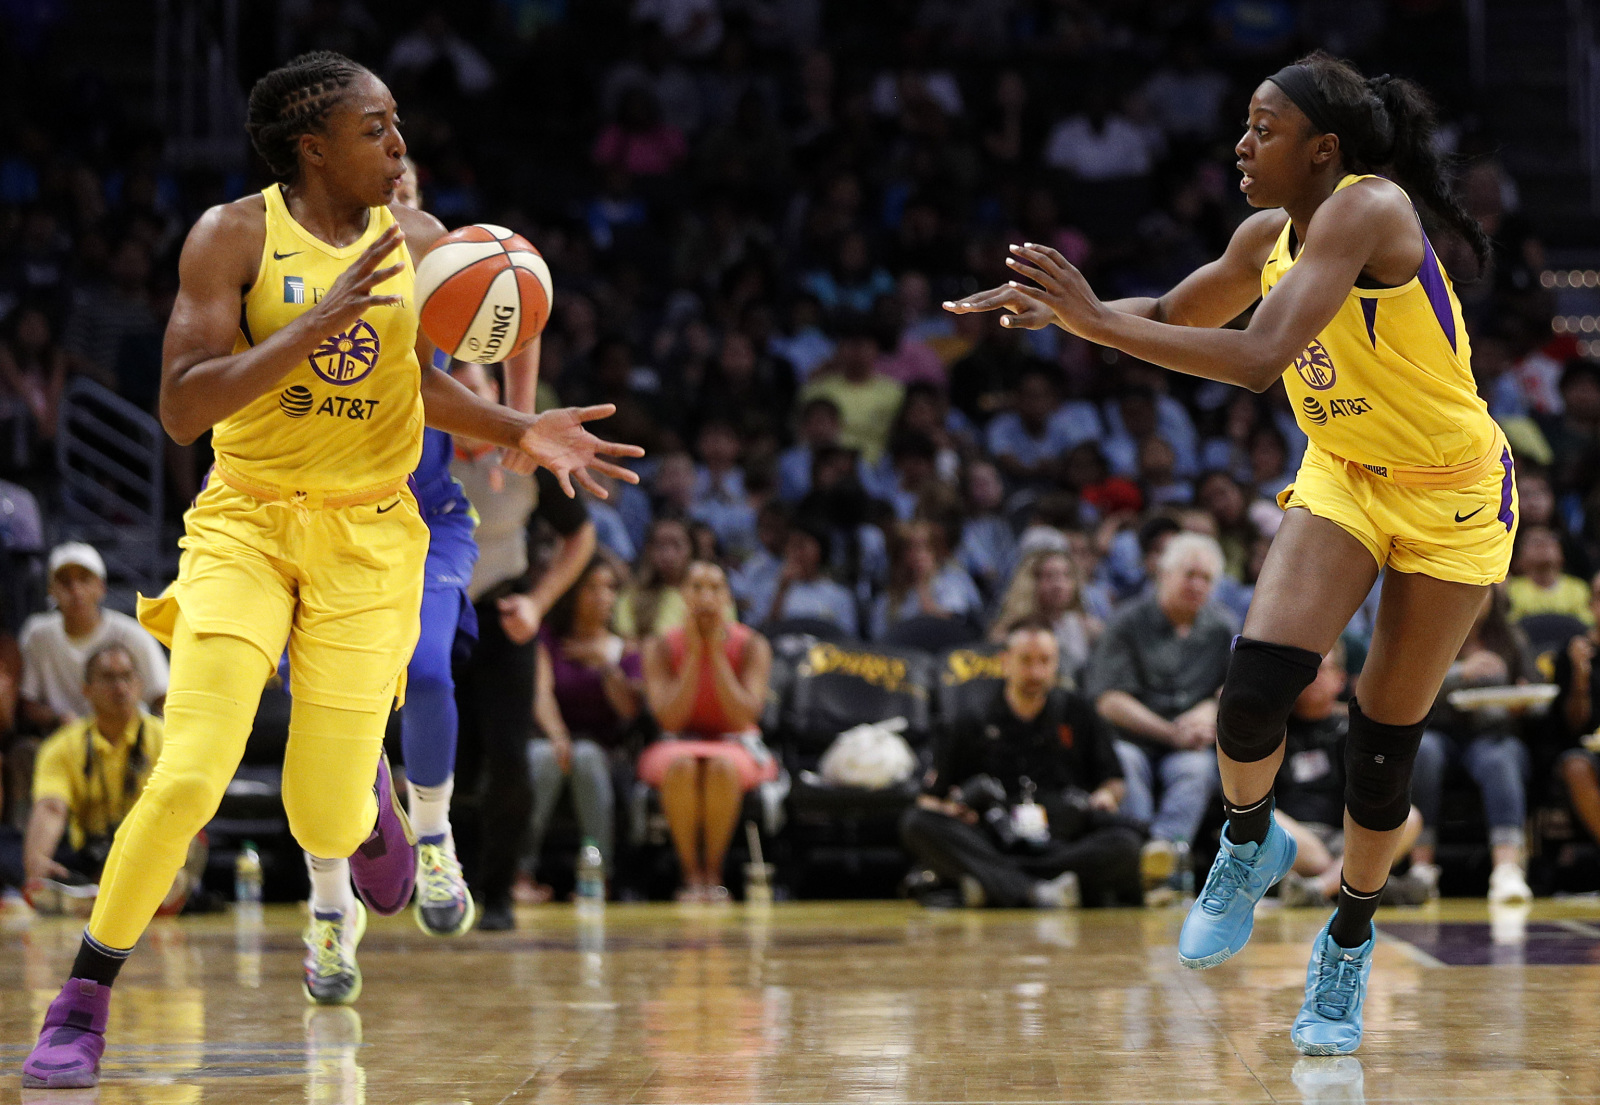 See the next Ogwumike at the 2020 Jr. NBA Global Championship